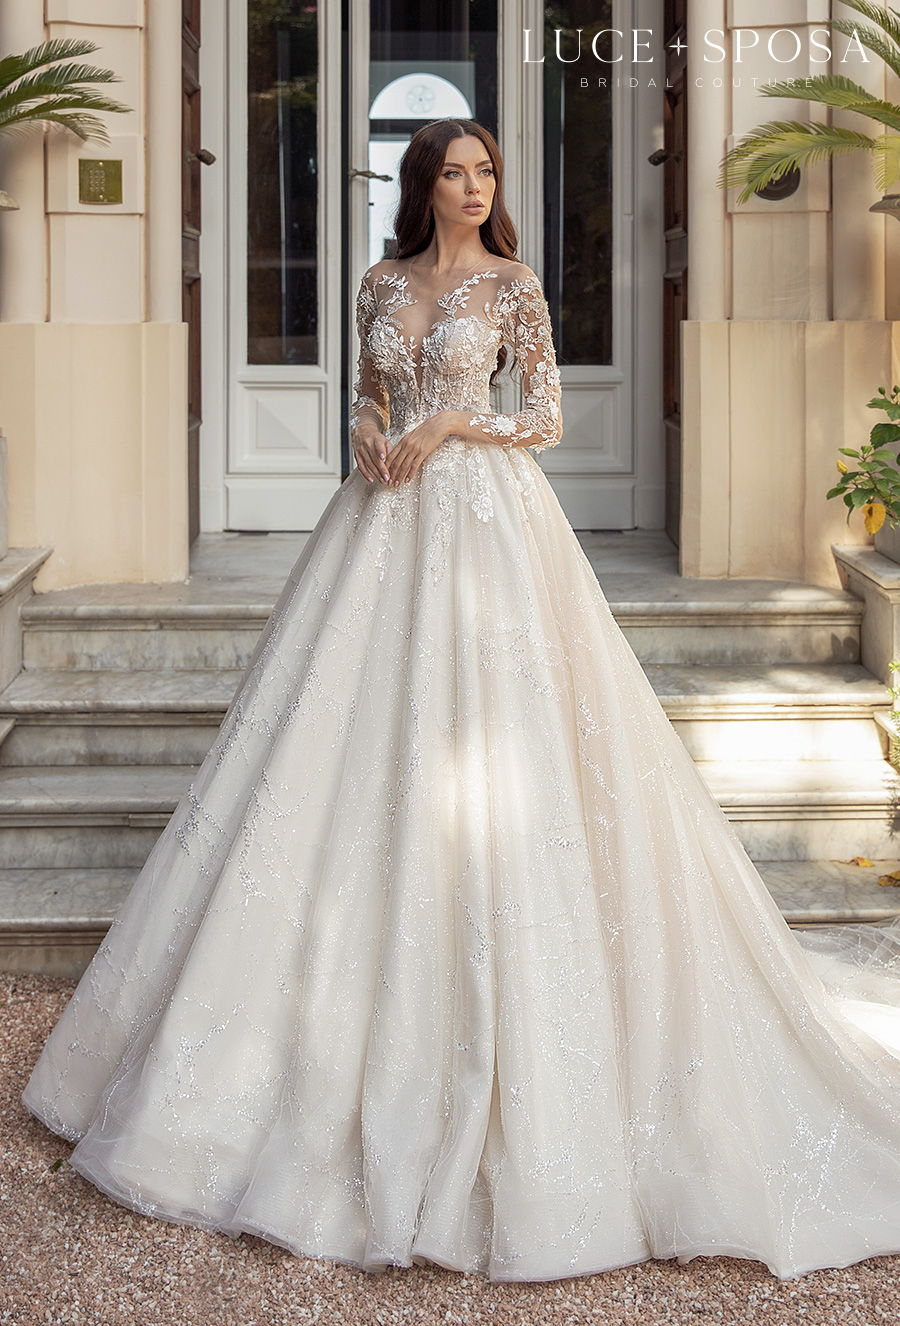 luce sposa 2021 sorrento bridal long sleeves illusion jewel sweetheart neckline heavily embellished bodice princess a  line wedding dress sheer button back chapel train (medeya) mv